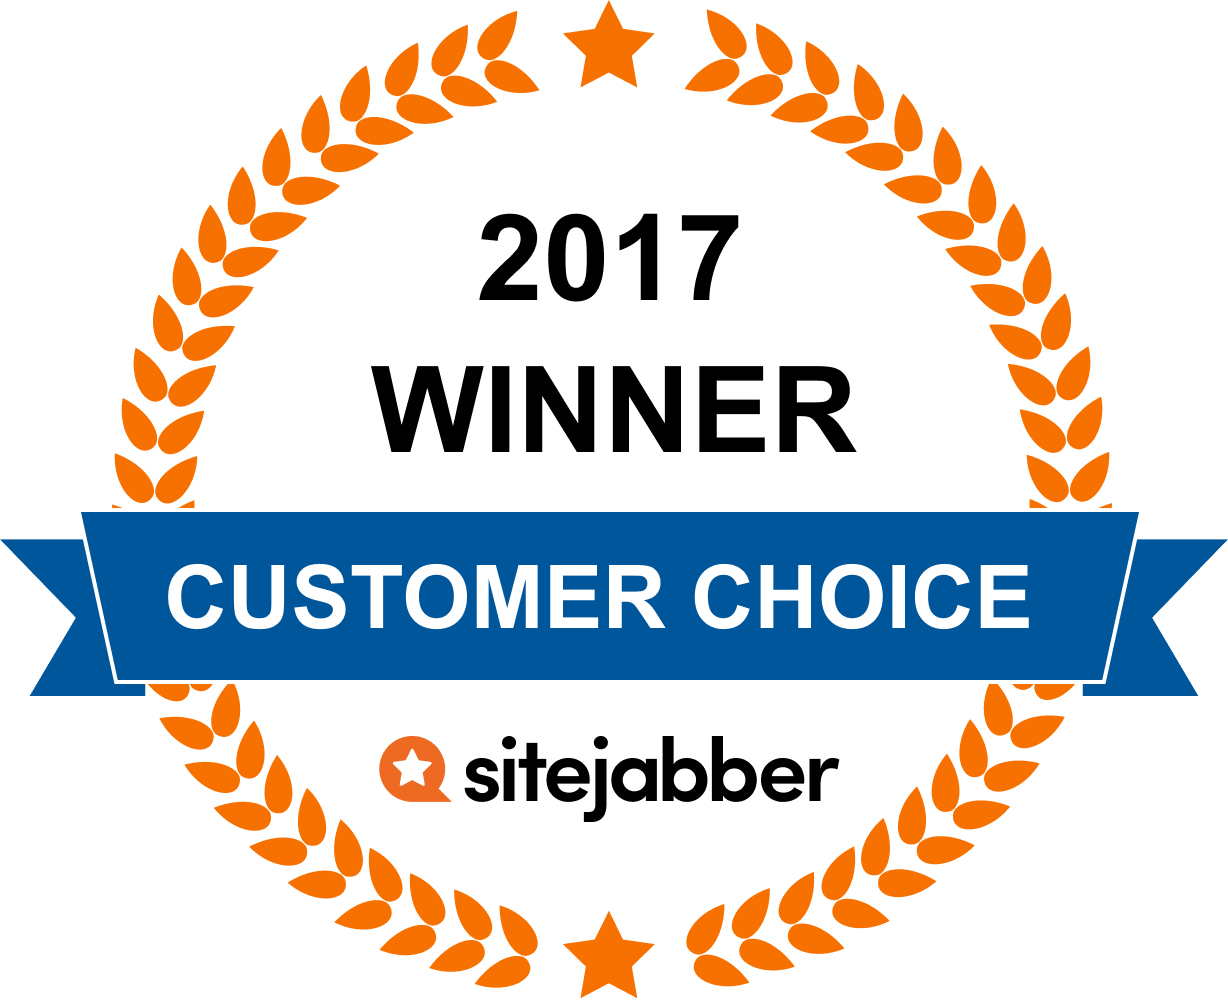 2017 Customer choice award